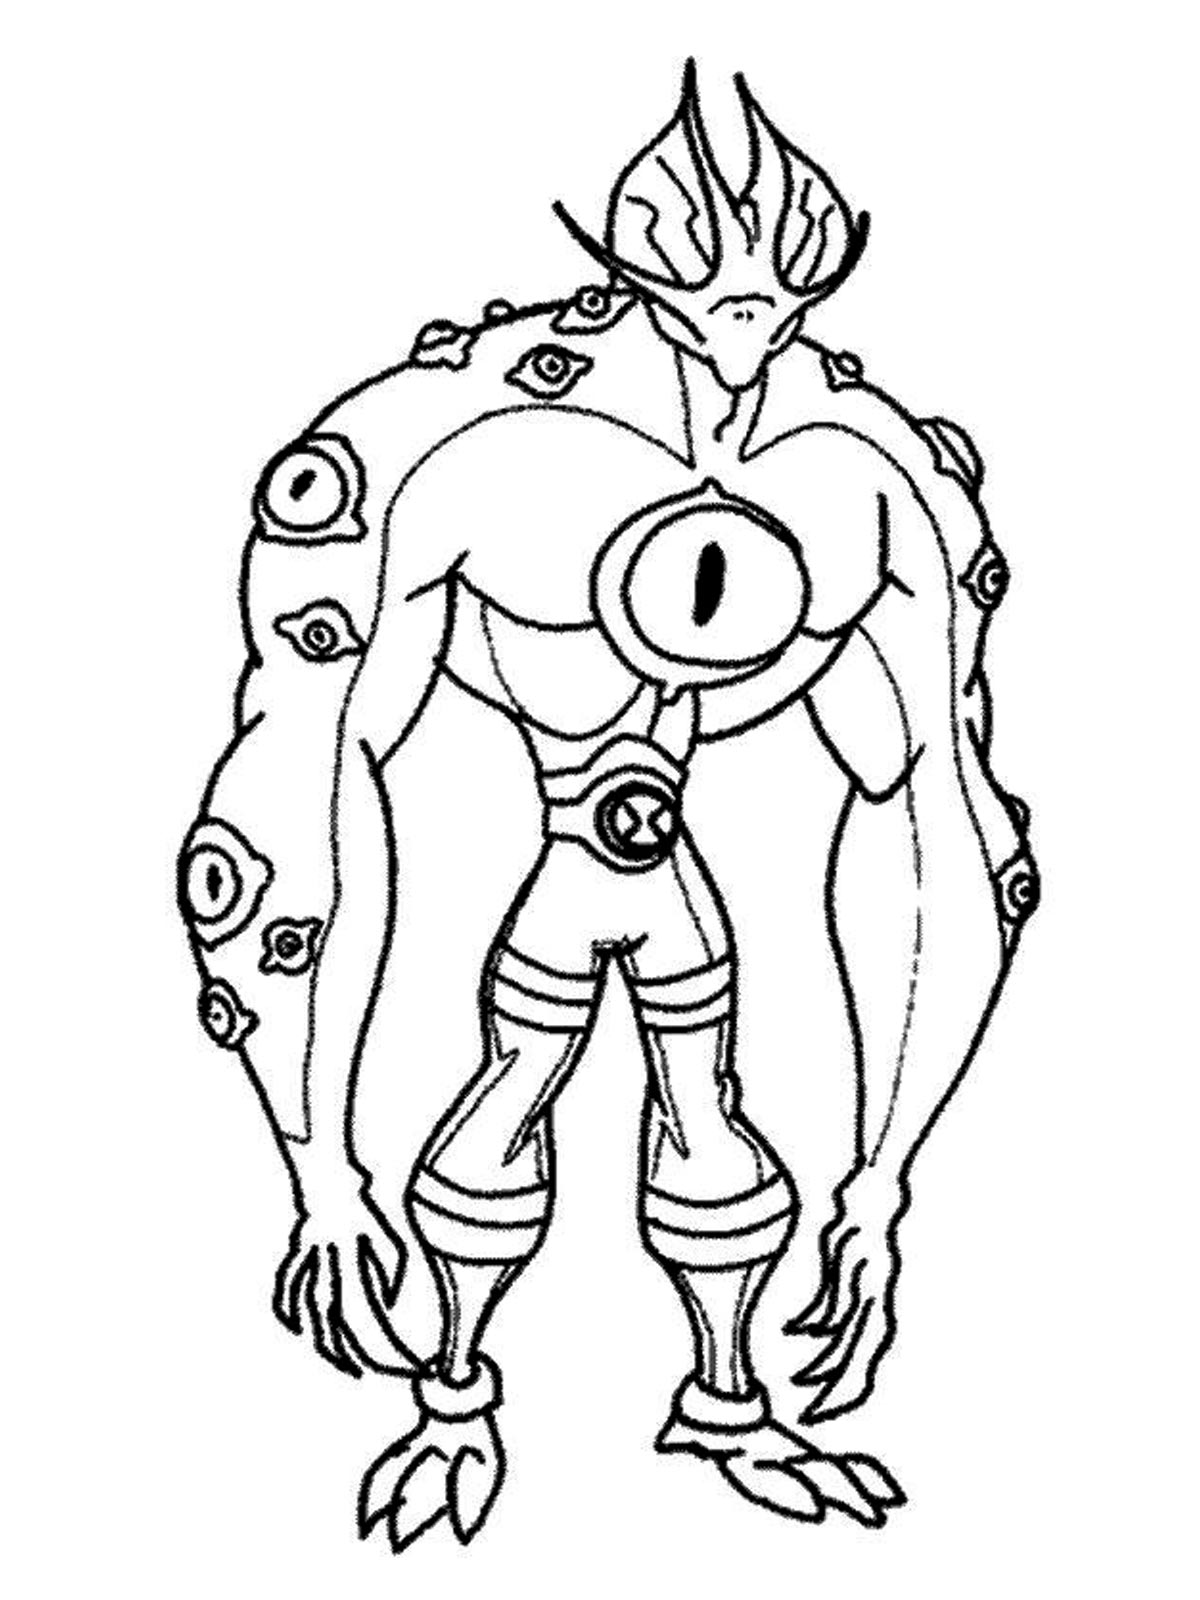 Ben 10 Printable Coloring Book - High Quality Coloring Pages